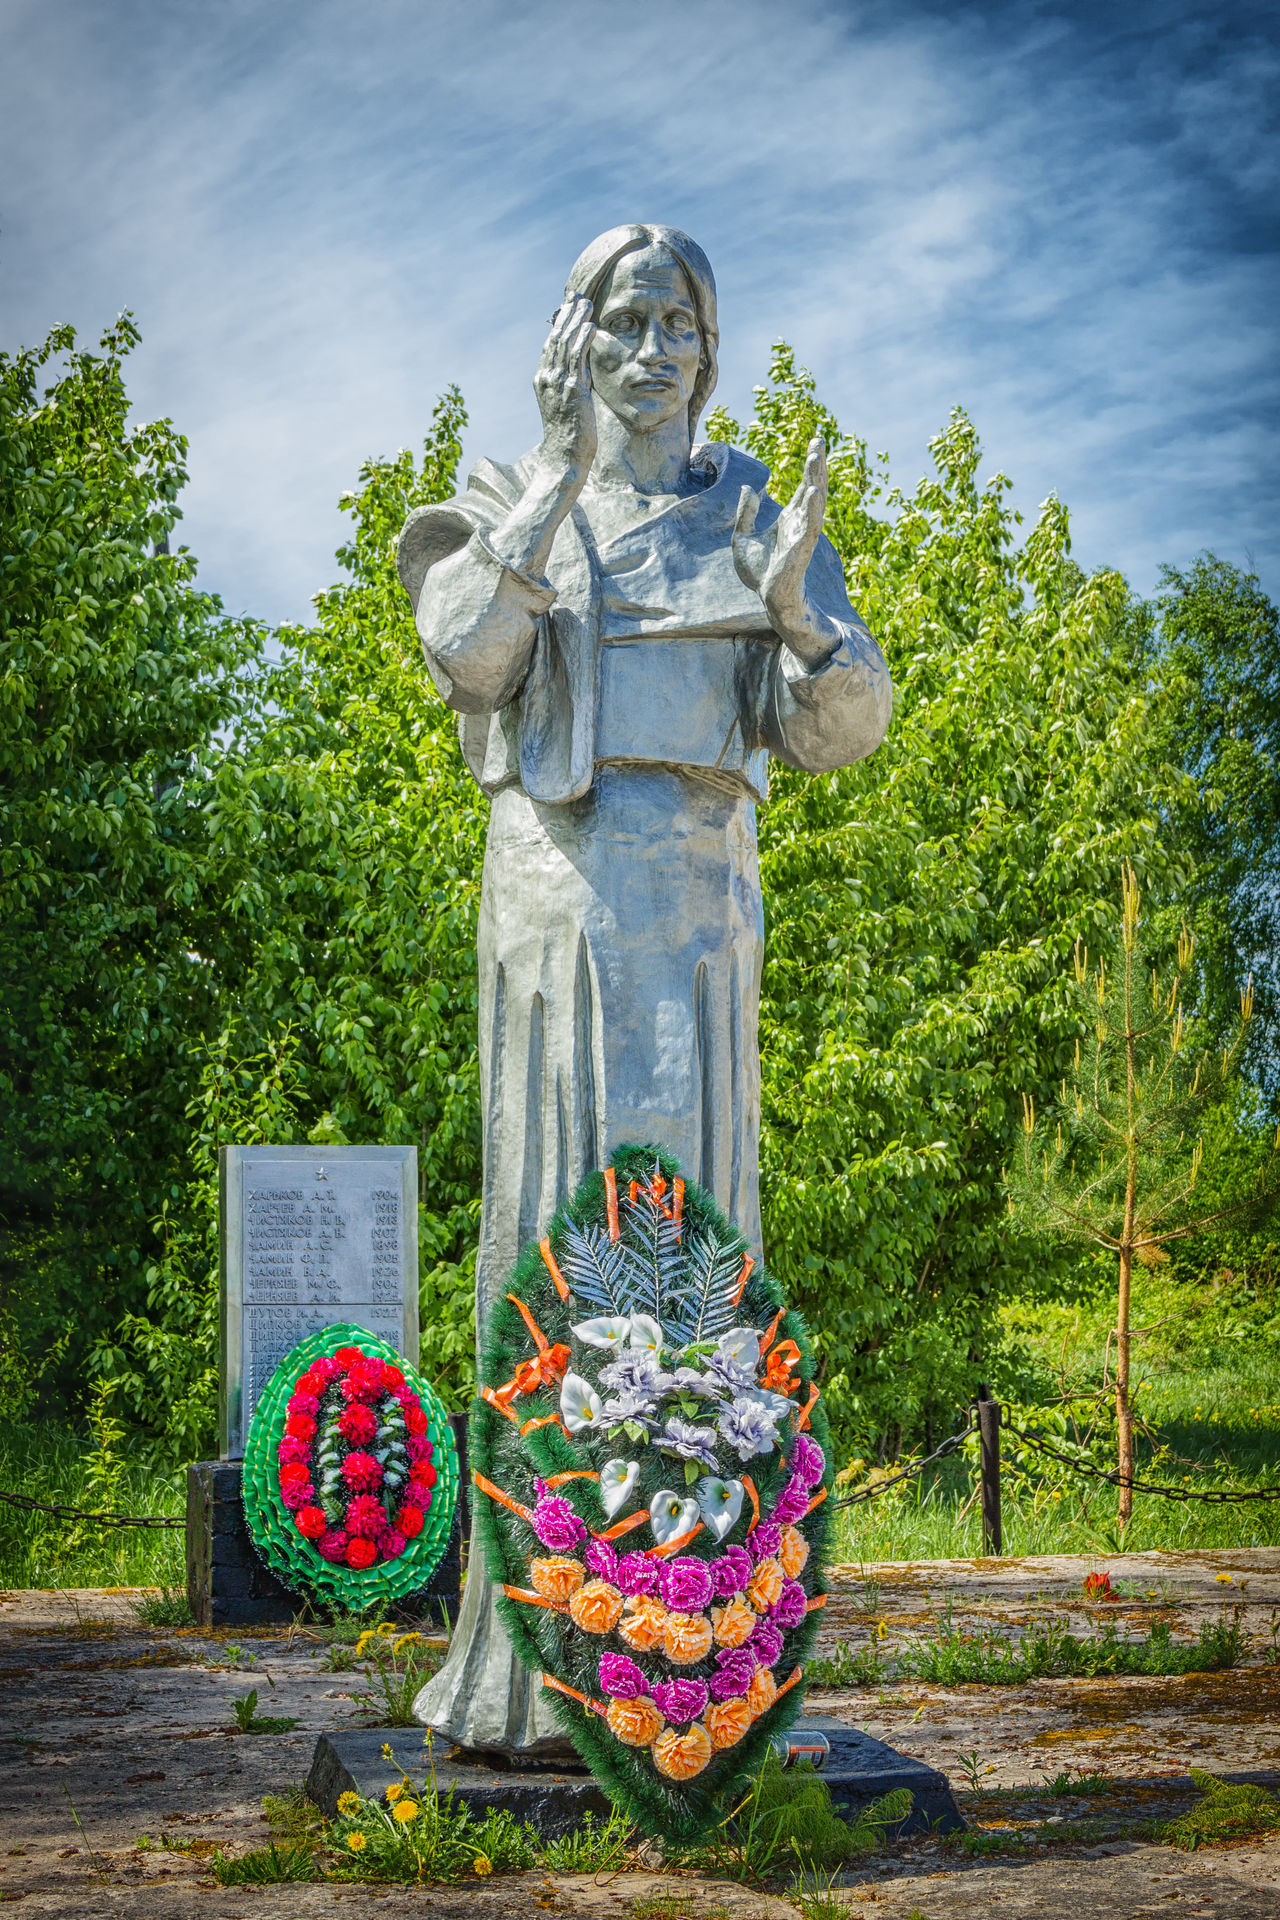 Obelisk died during the Great Patriotic War. Art And Craft Cloud - Sky Day Monument No People Obelisk Outdoors Sculpture Sky Statue Tree